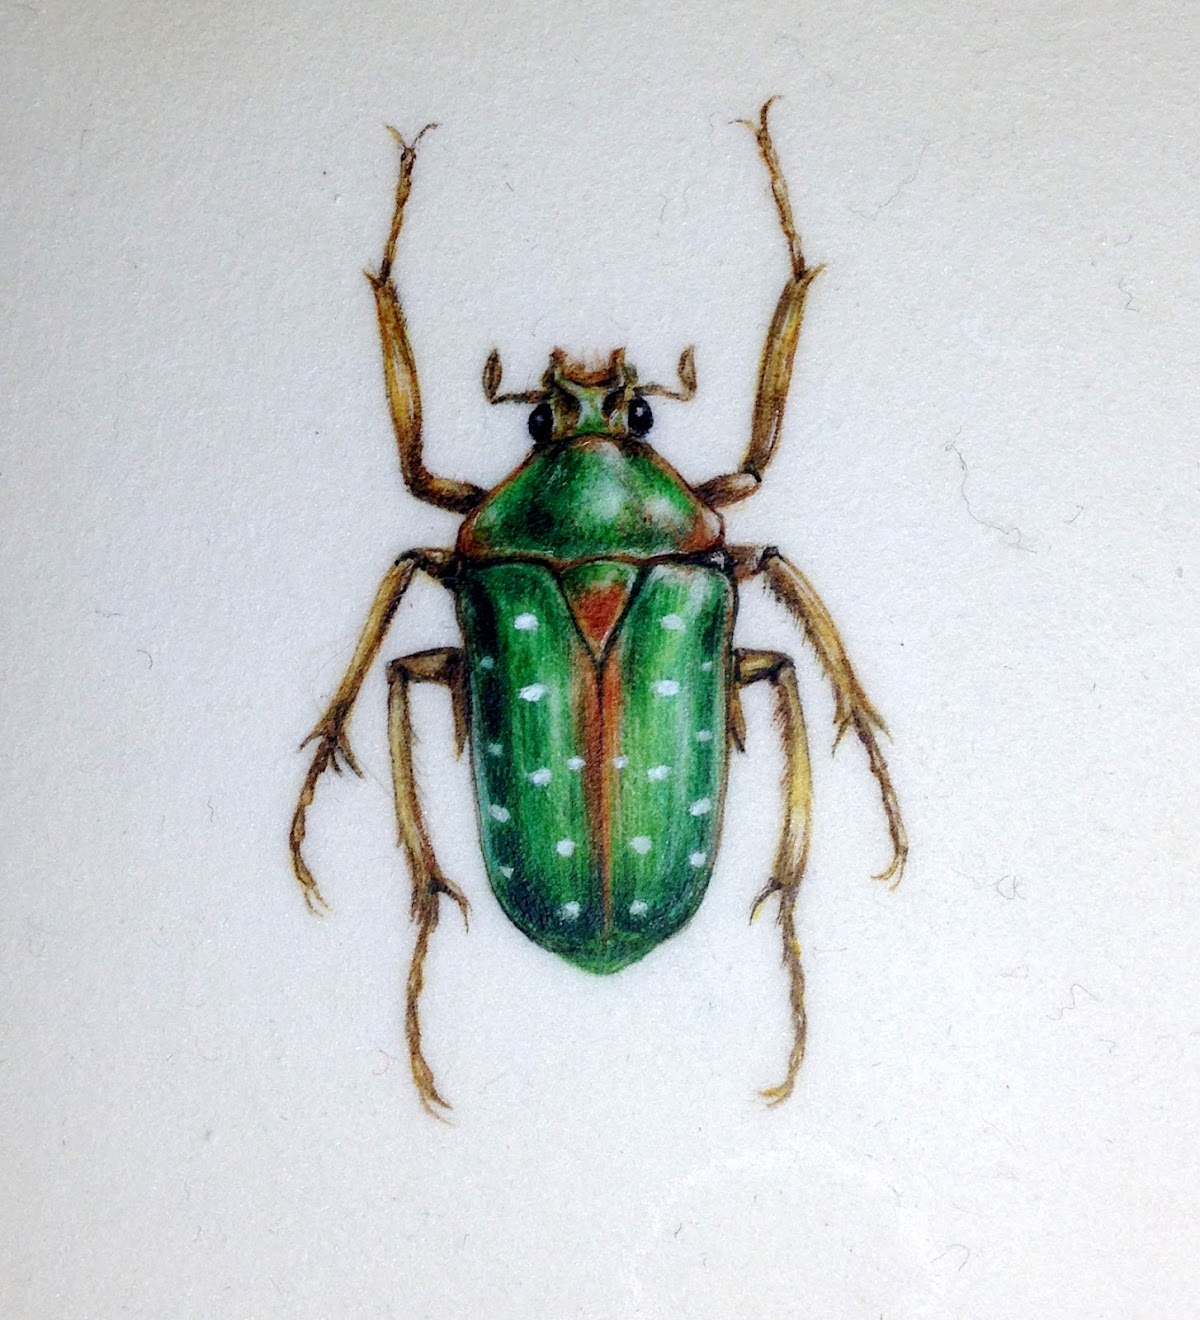 Green spotted beetle watercolour painting on vellum